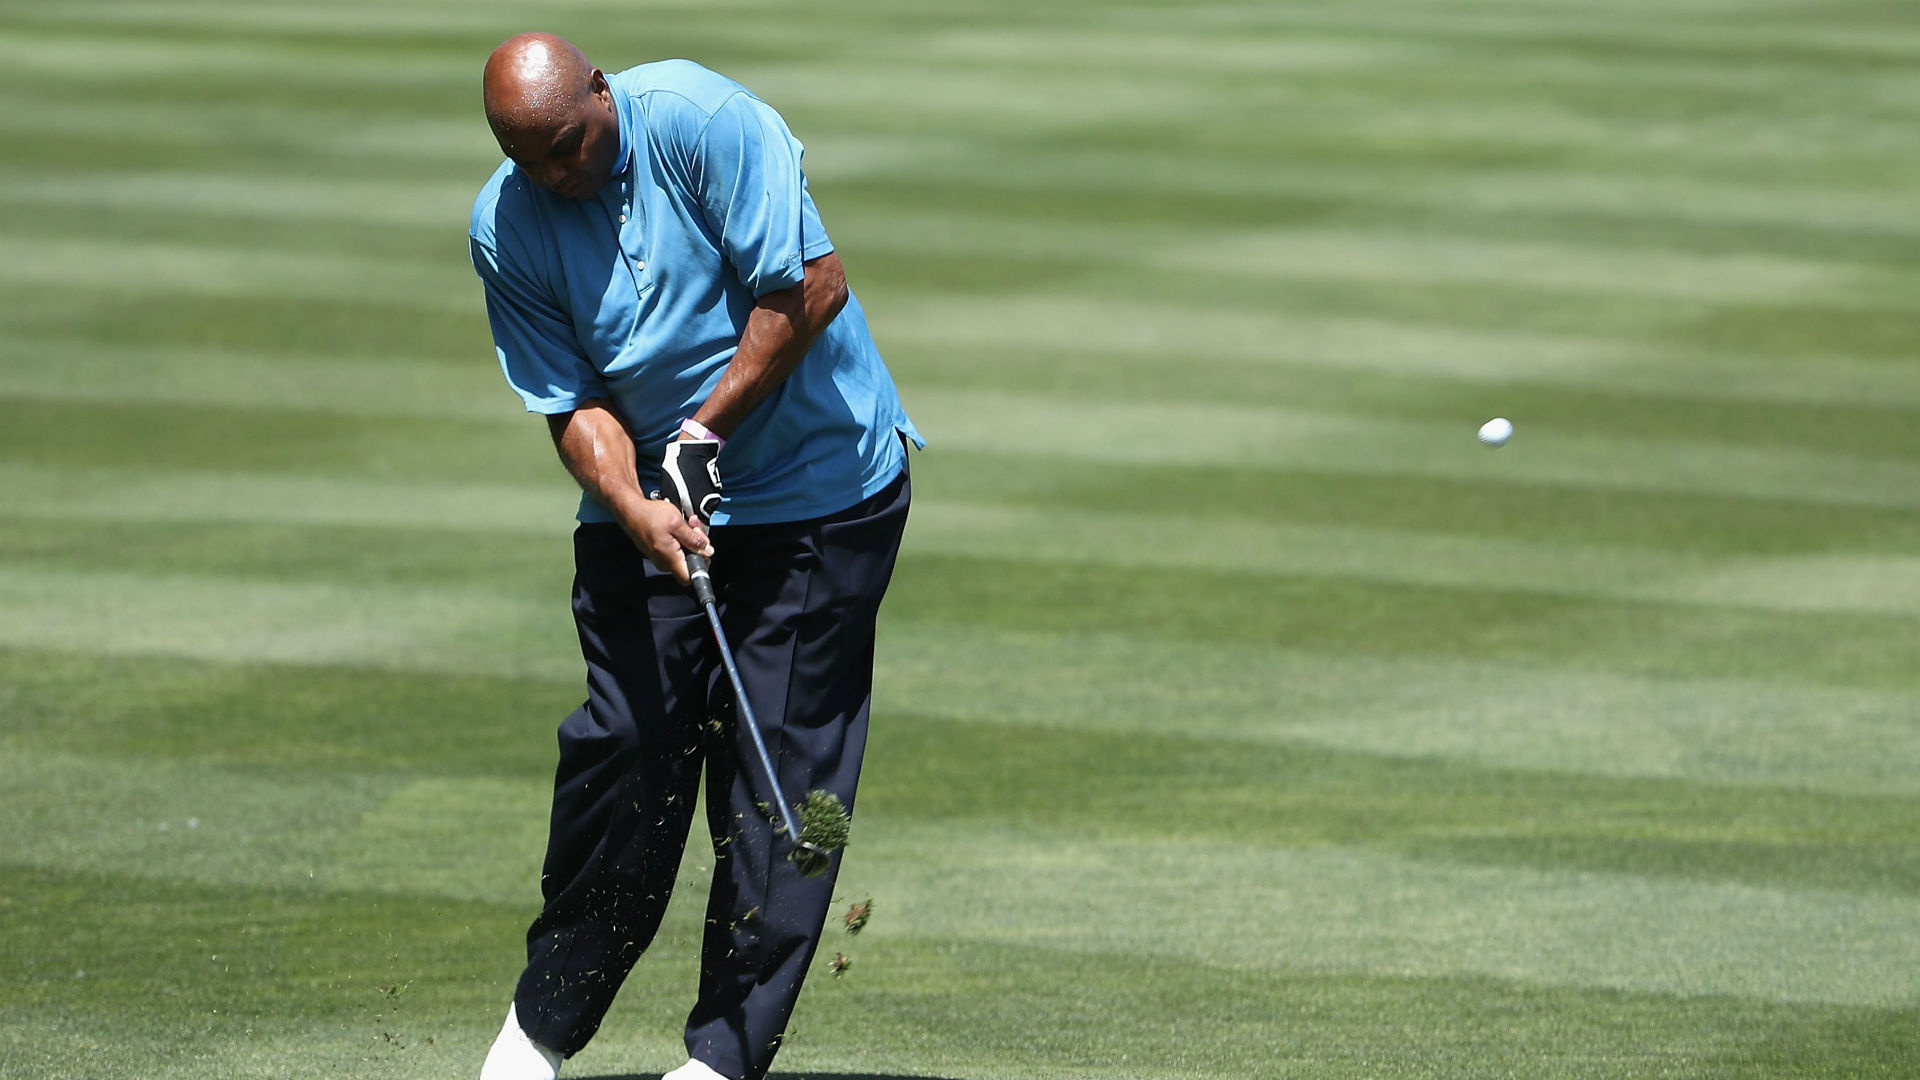 Charles Barkley's golf swing is the reason he's playing on different tees at The Match 3 1